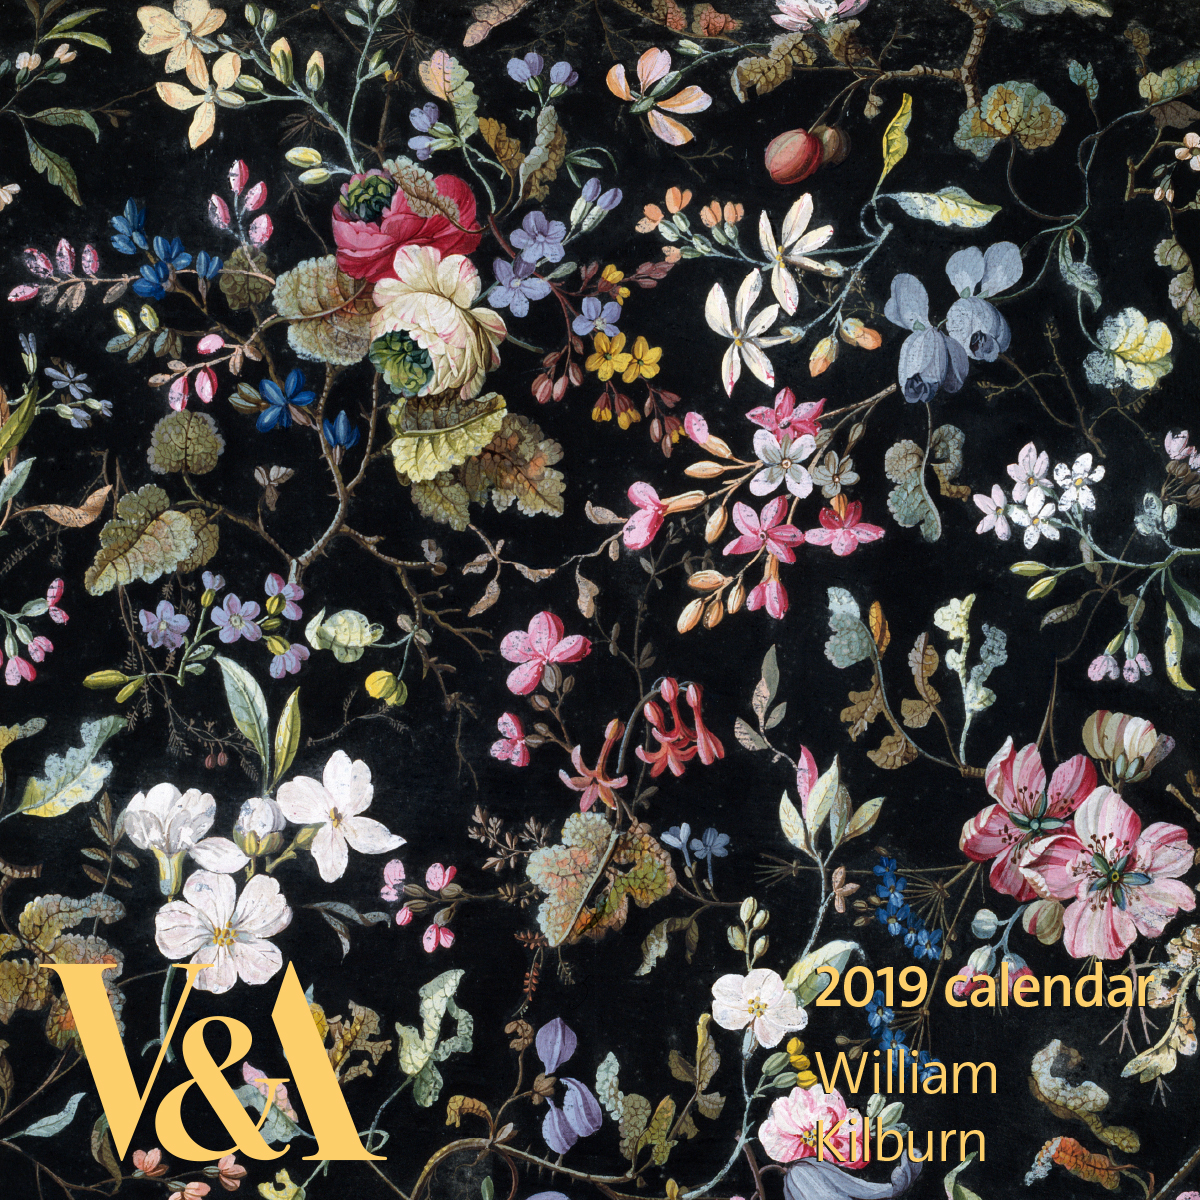 V&A 2019 William Kilburn calendar